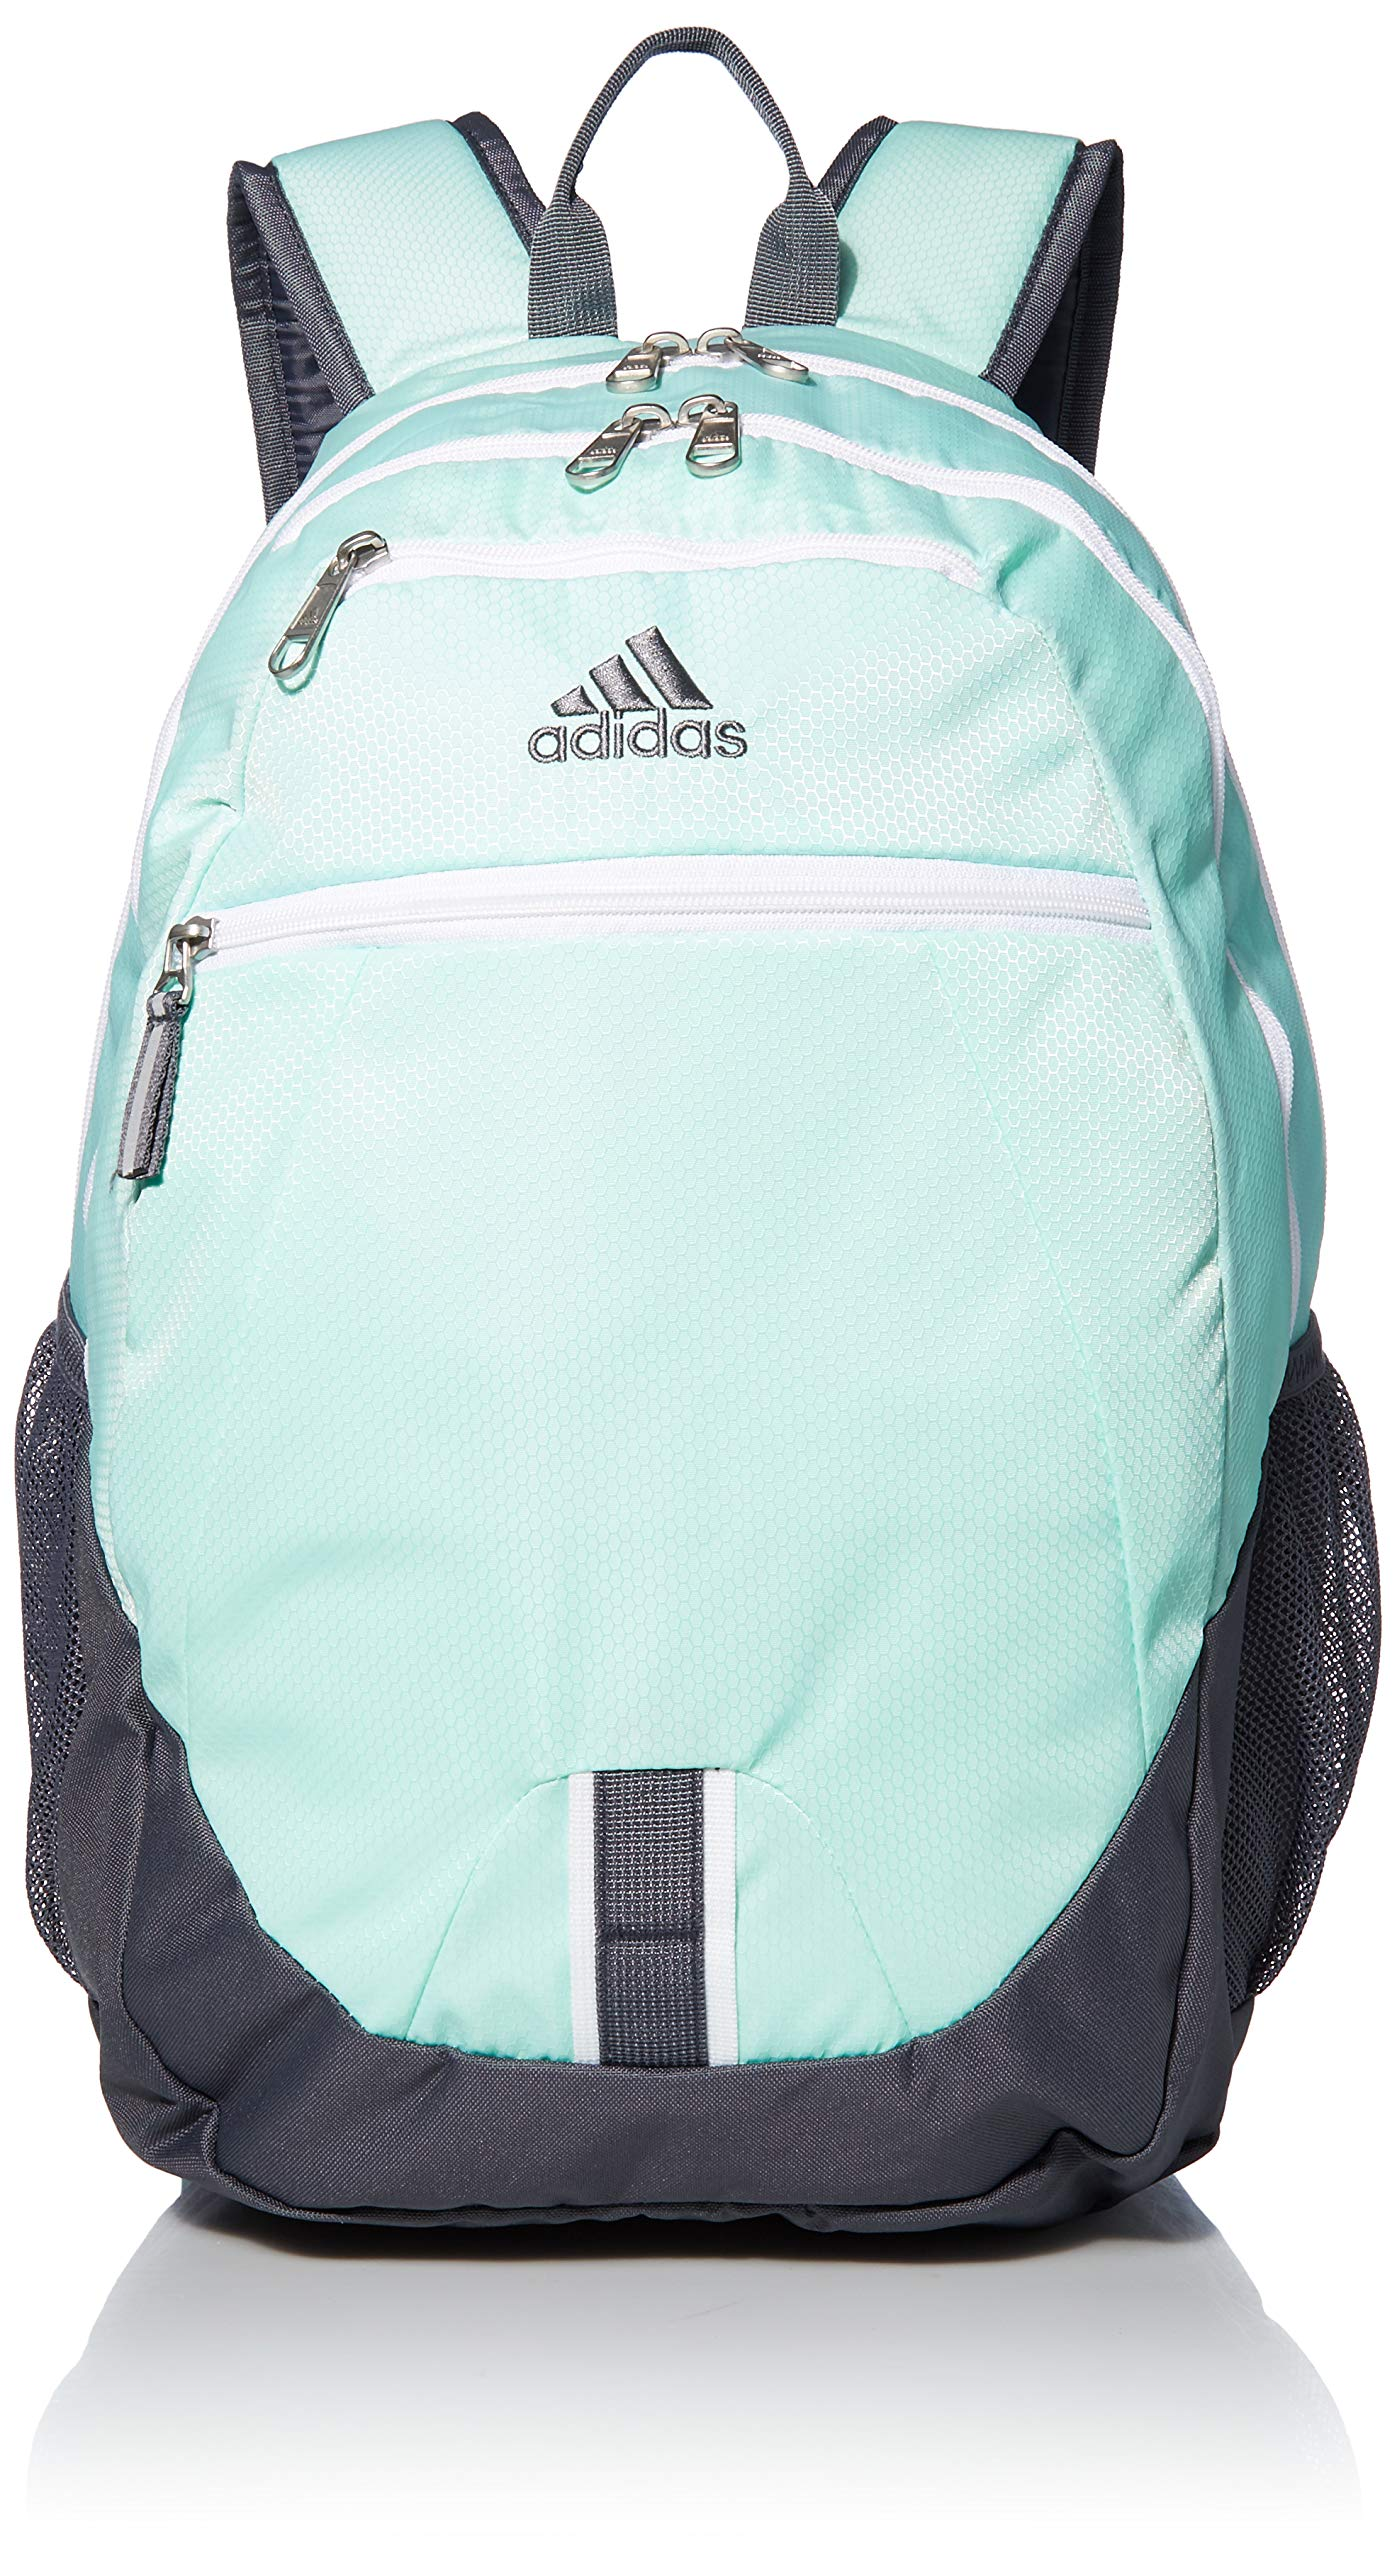 adidas Unisex Foundation Backpack, Clear Mint/White/Onix, ONE SIZE by adidas